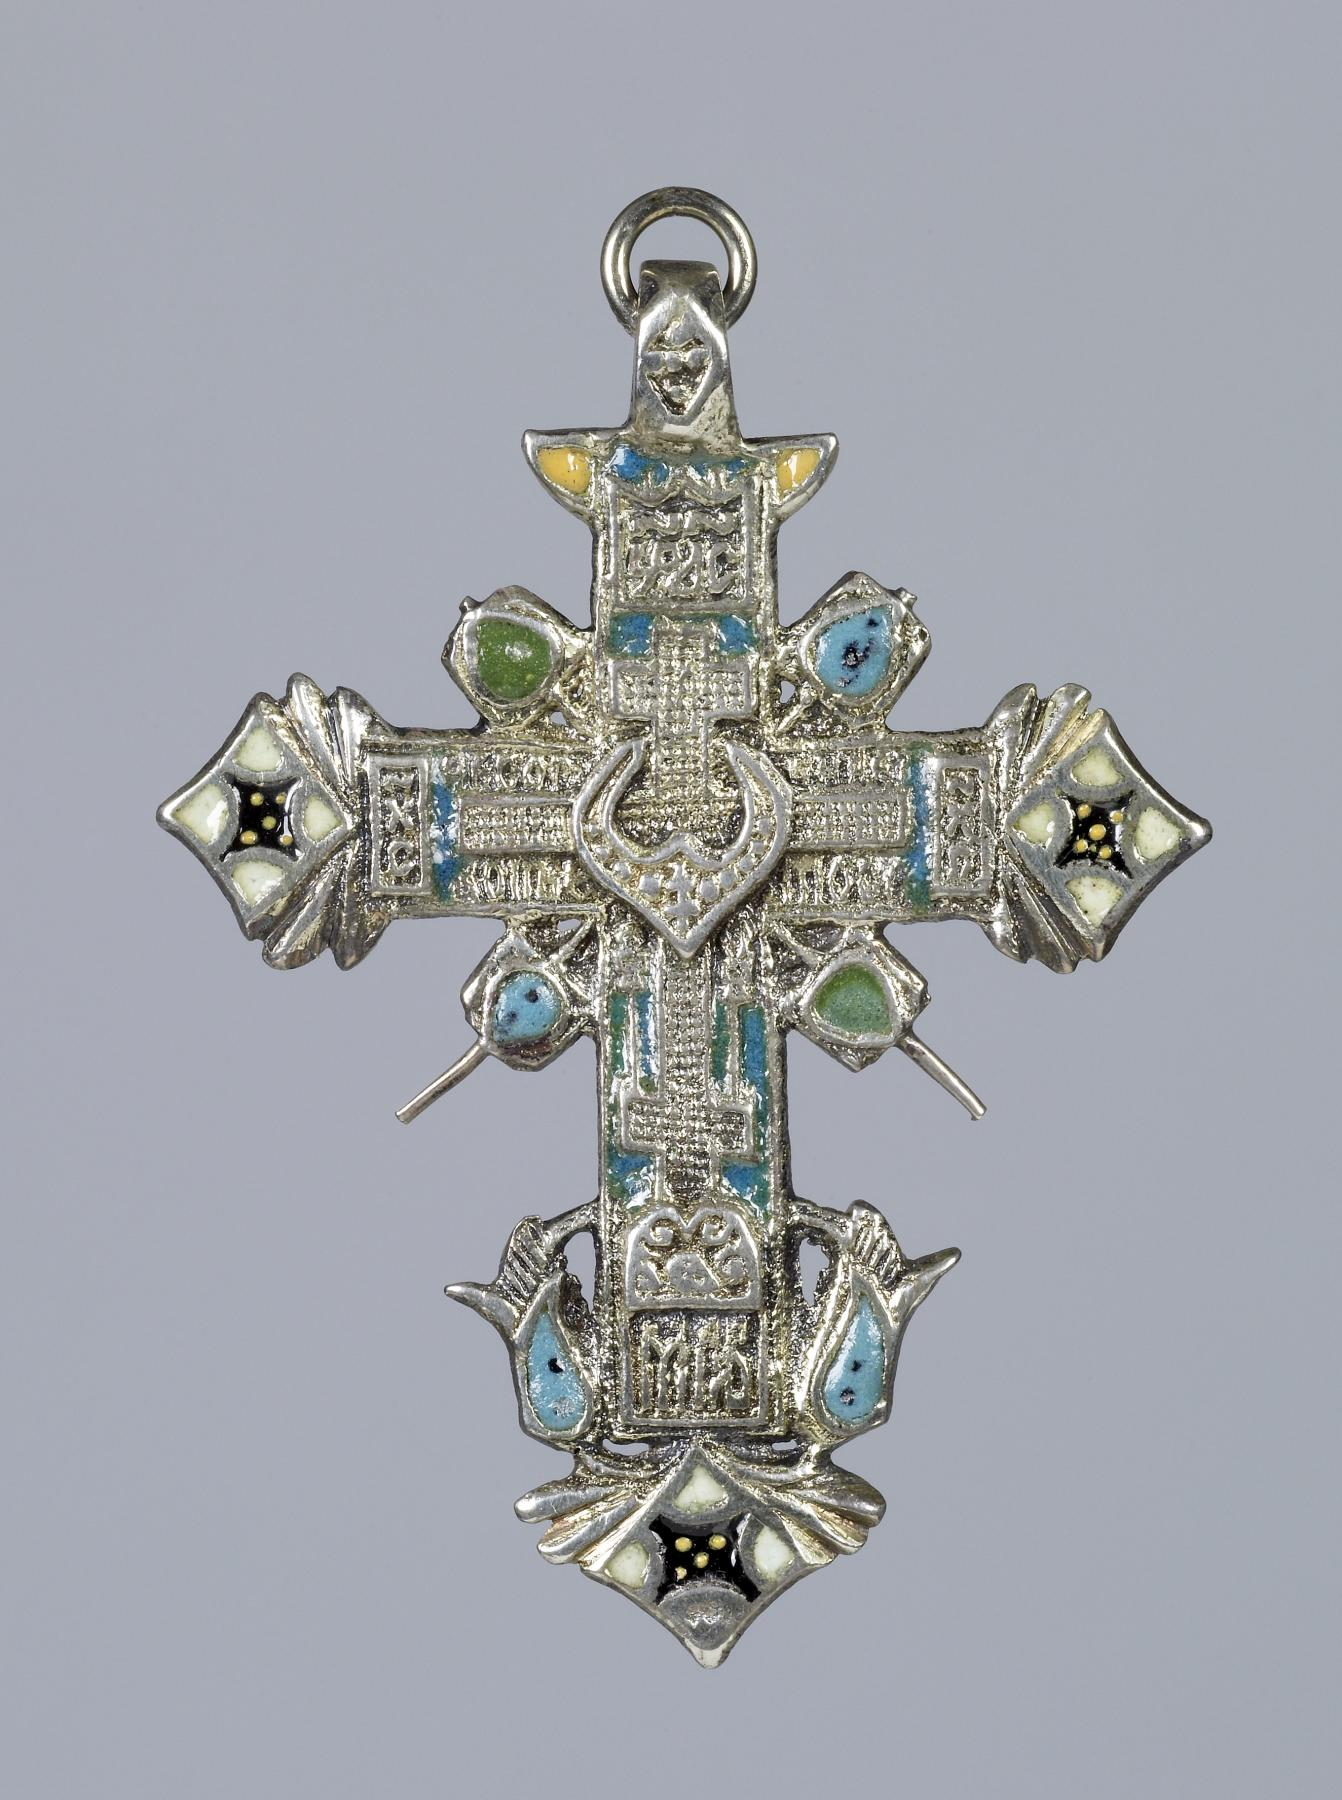 filerussian orthodox cross walters 44714 side ajpg